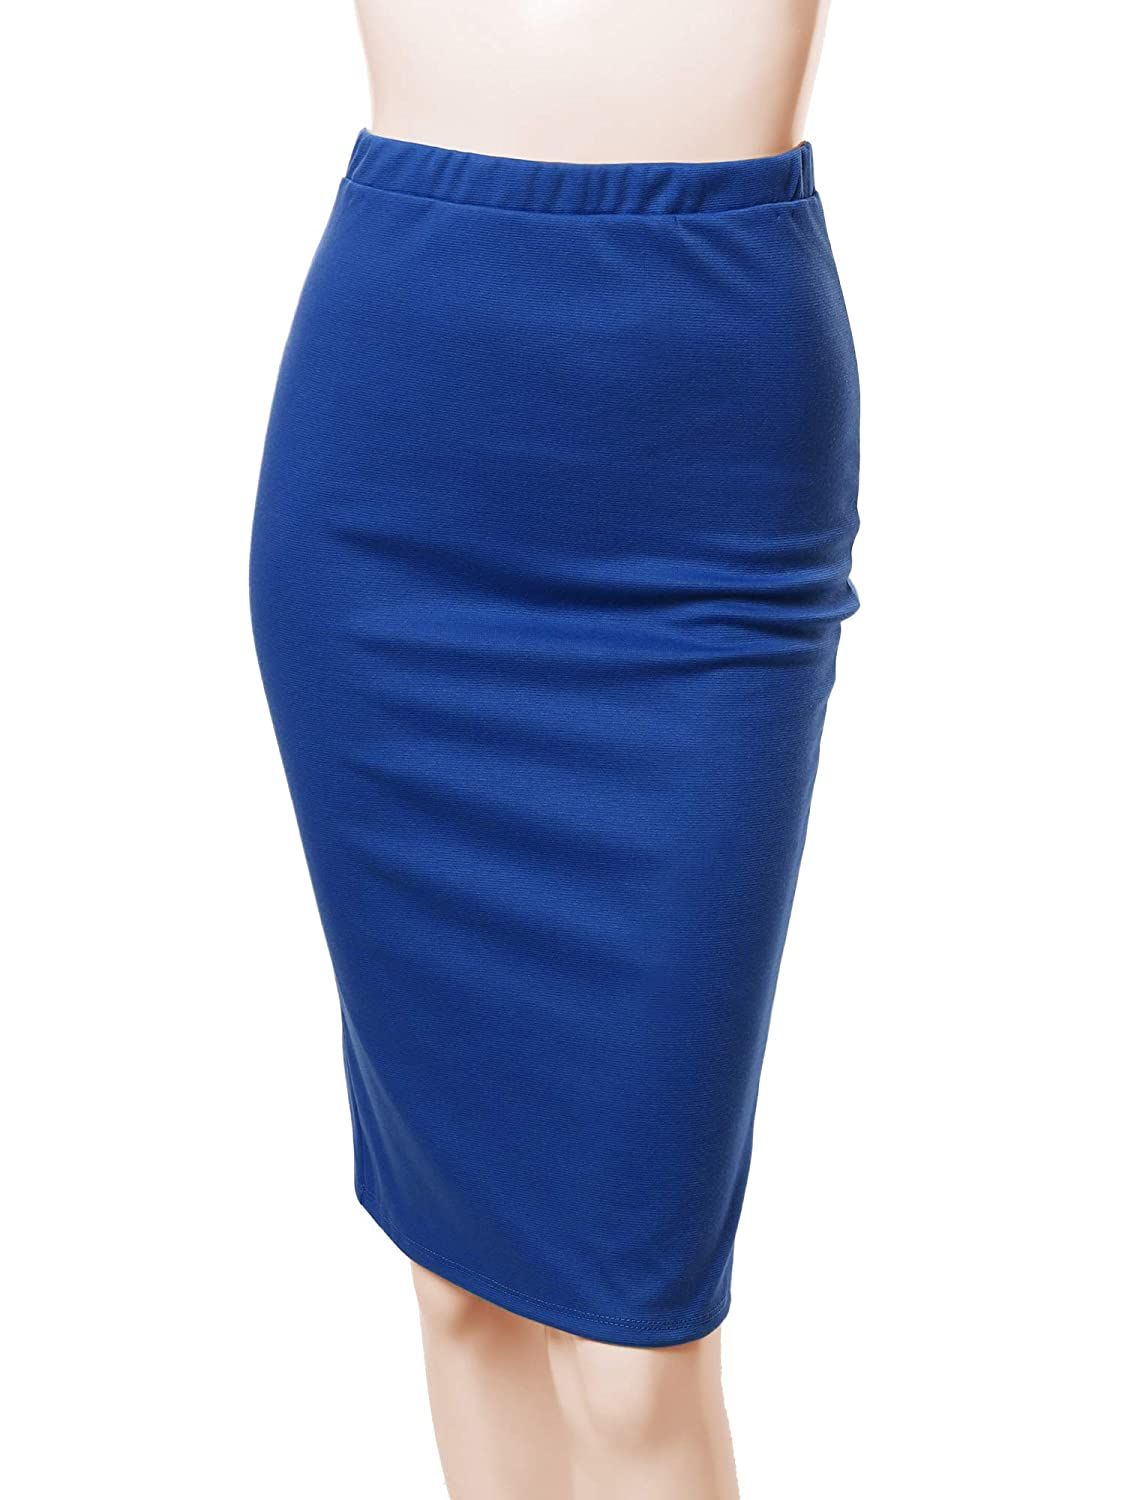 Aawskm0005 Royal bluee Awesome21 Women's Fitted Stretch Solid Print High Waist Midi Pencil Skirt  Made in USA